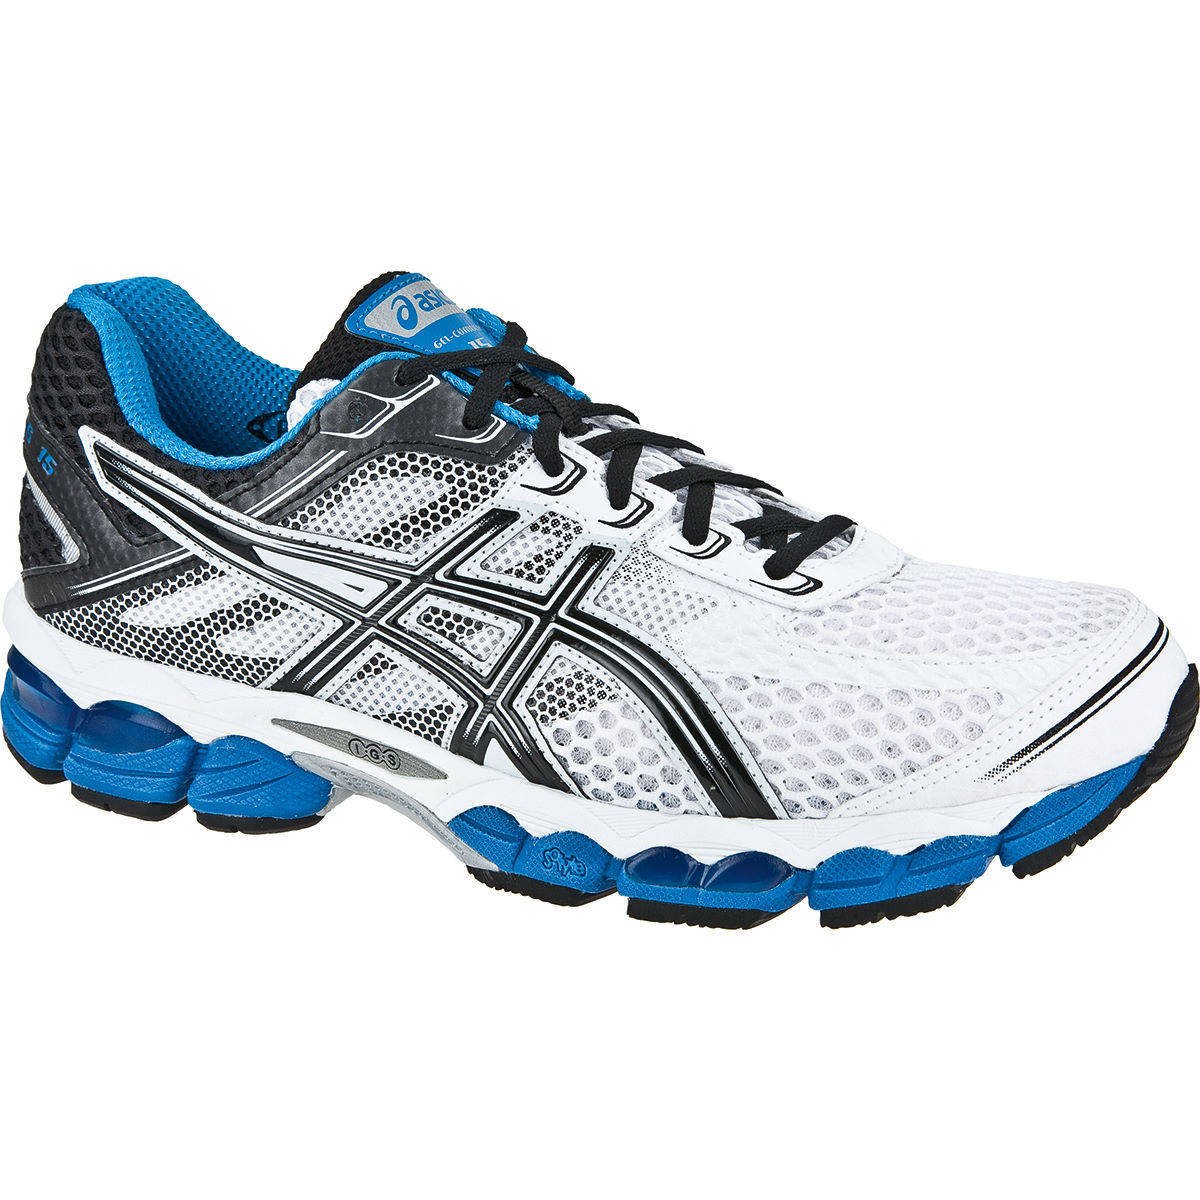 chaussures de running amorties asics gel cumulus 15 shoes aw13 wiggle france. Black Bedroom Furniture Sets. Home Design Ideas